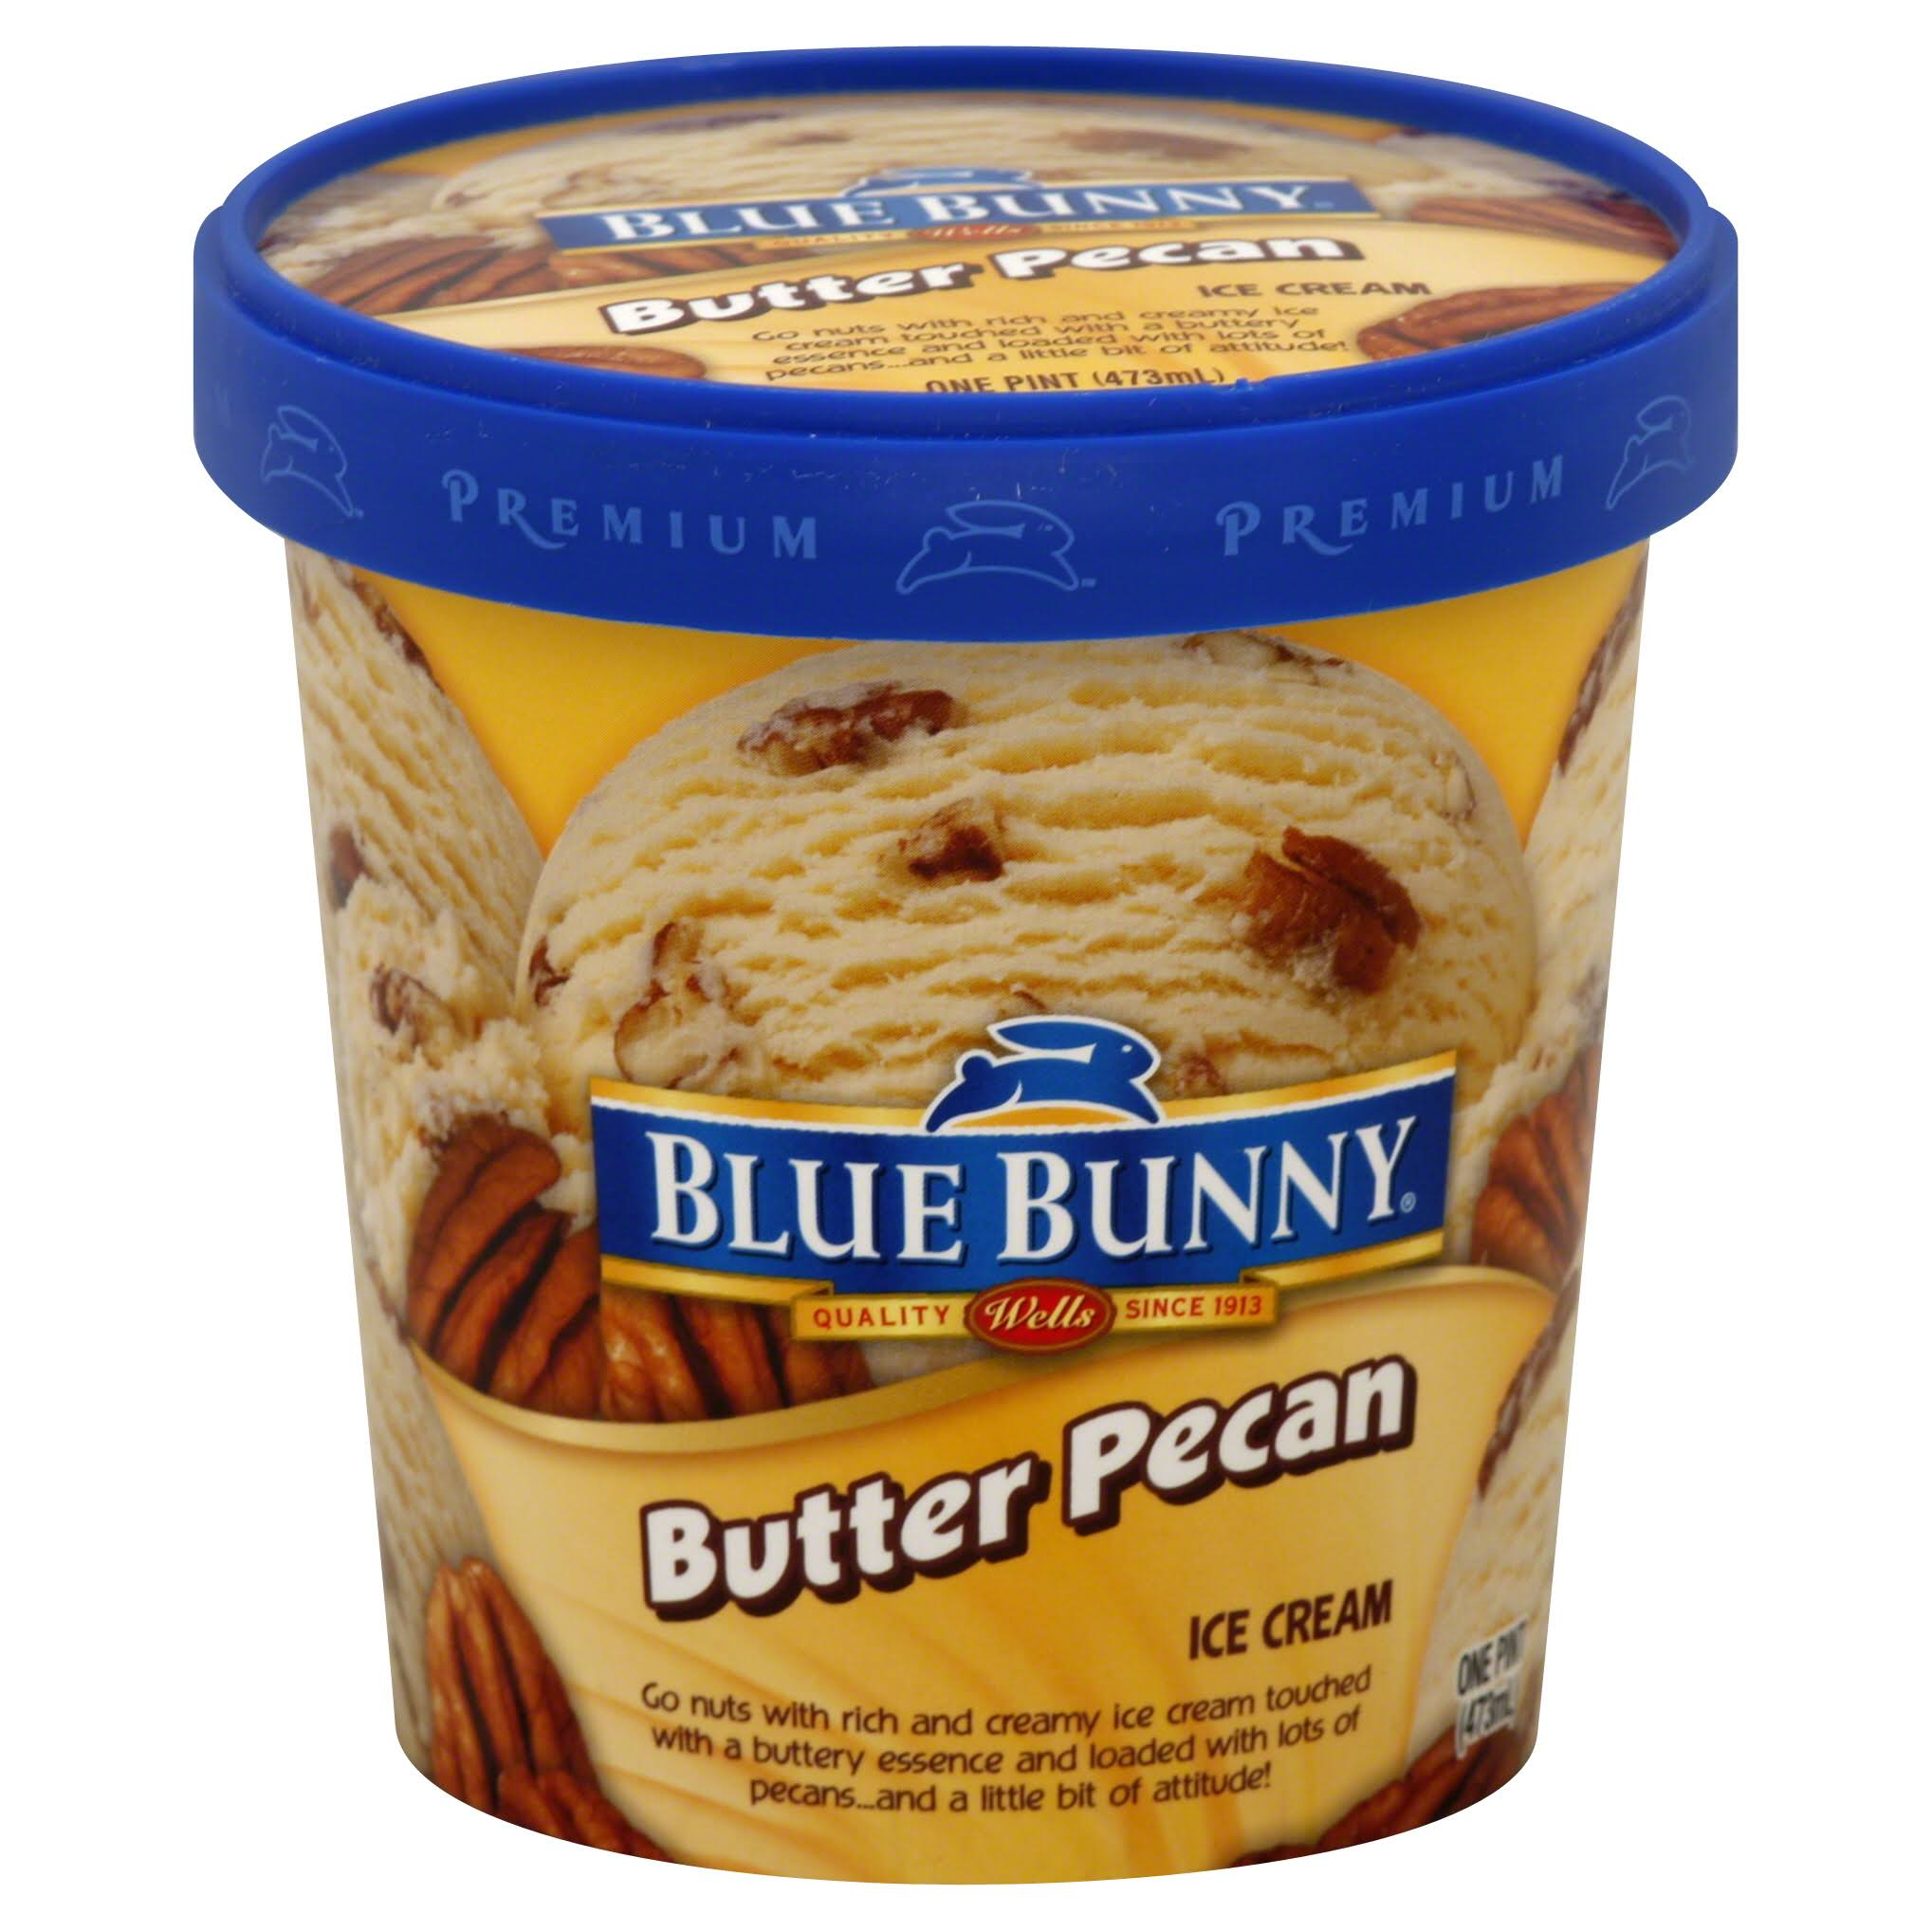 Blue Bunny Ice Cream - Butter Pecan